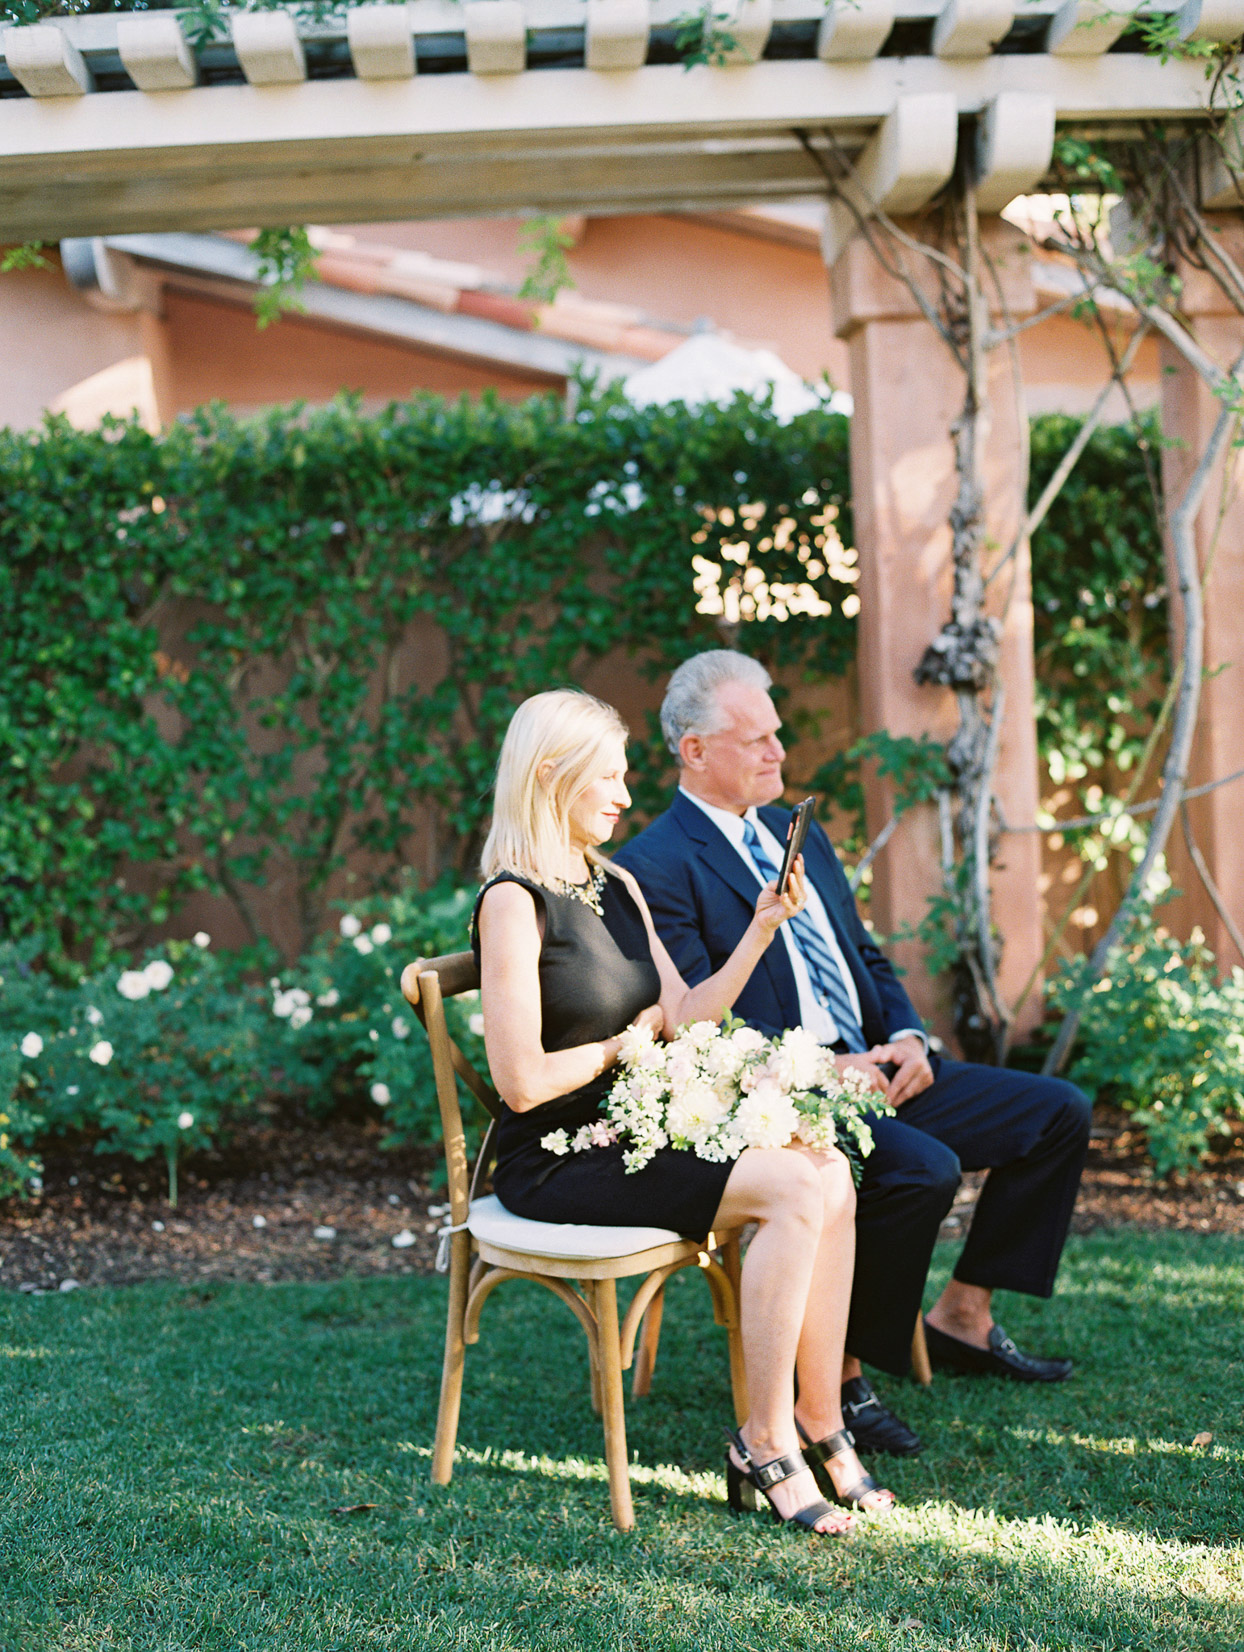 two wedding ceremony guests on wooden chairs